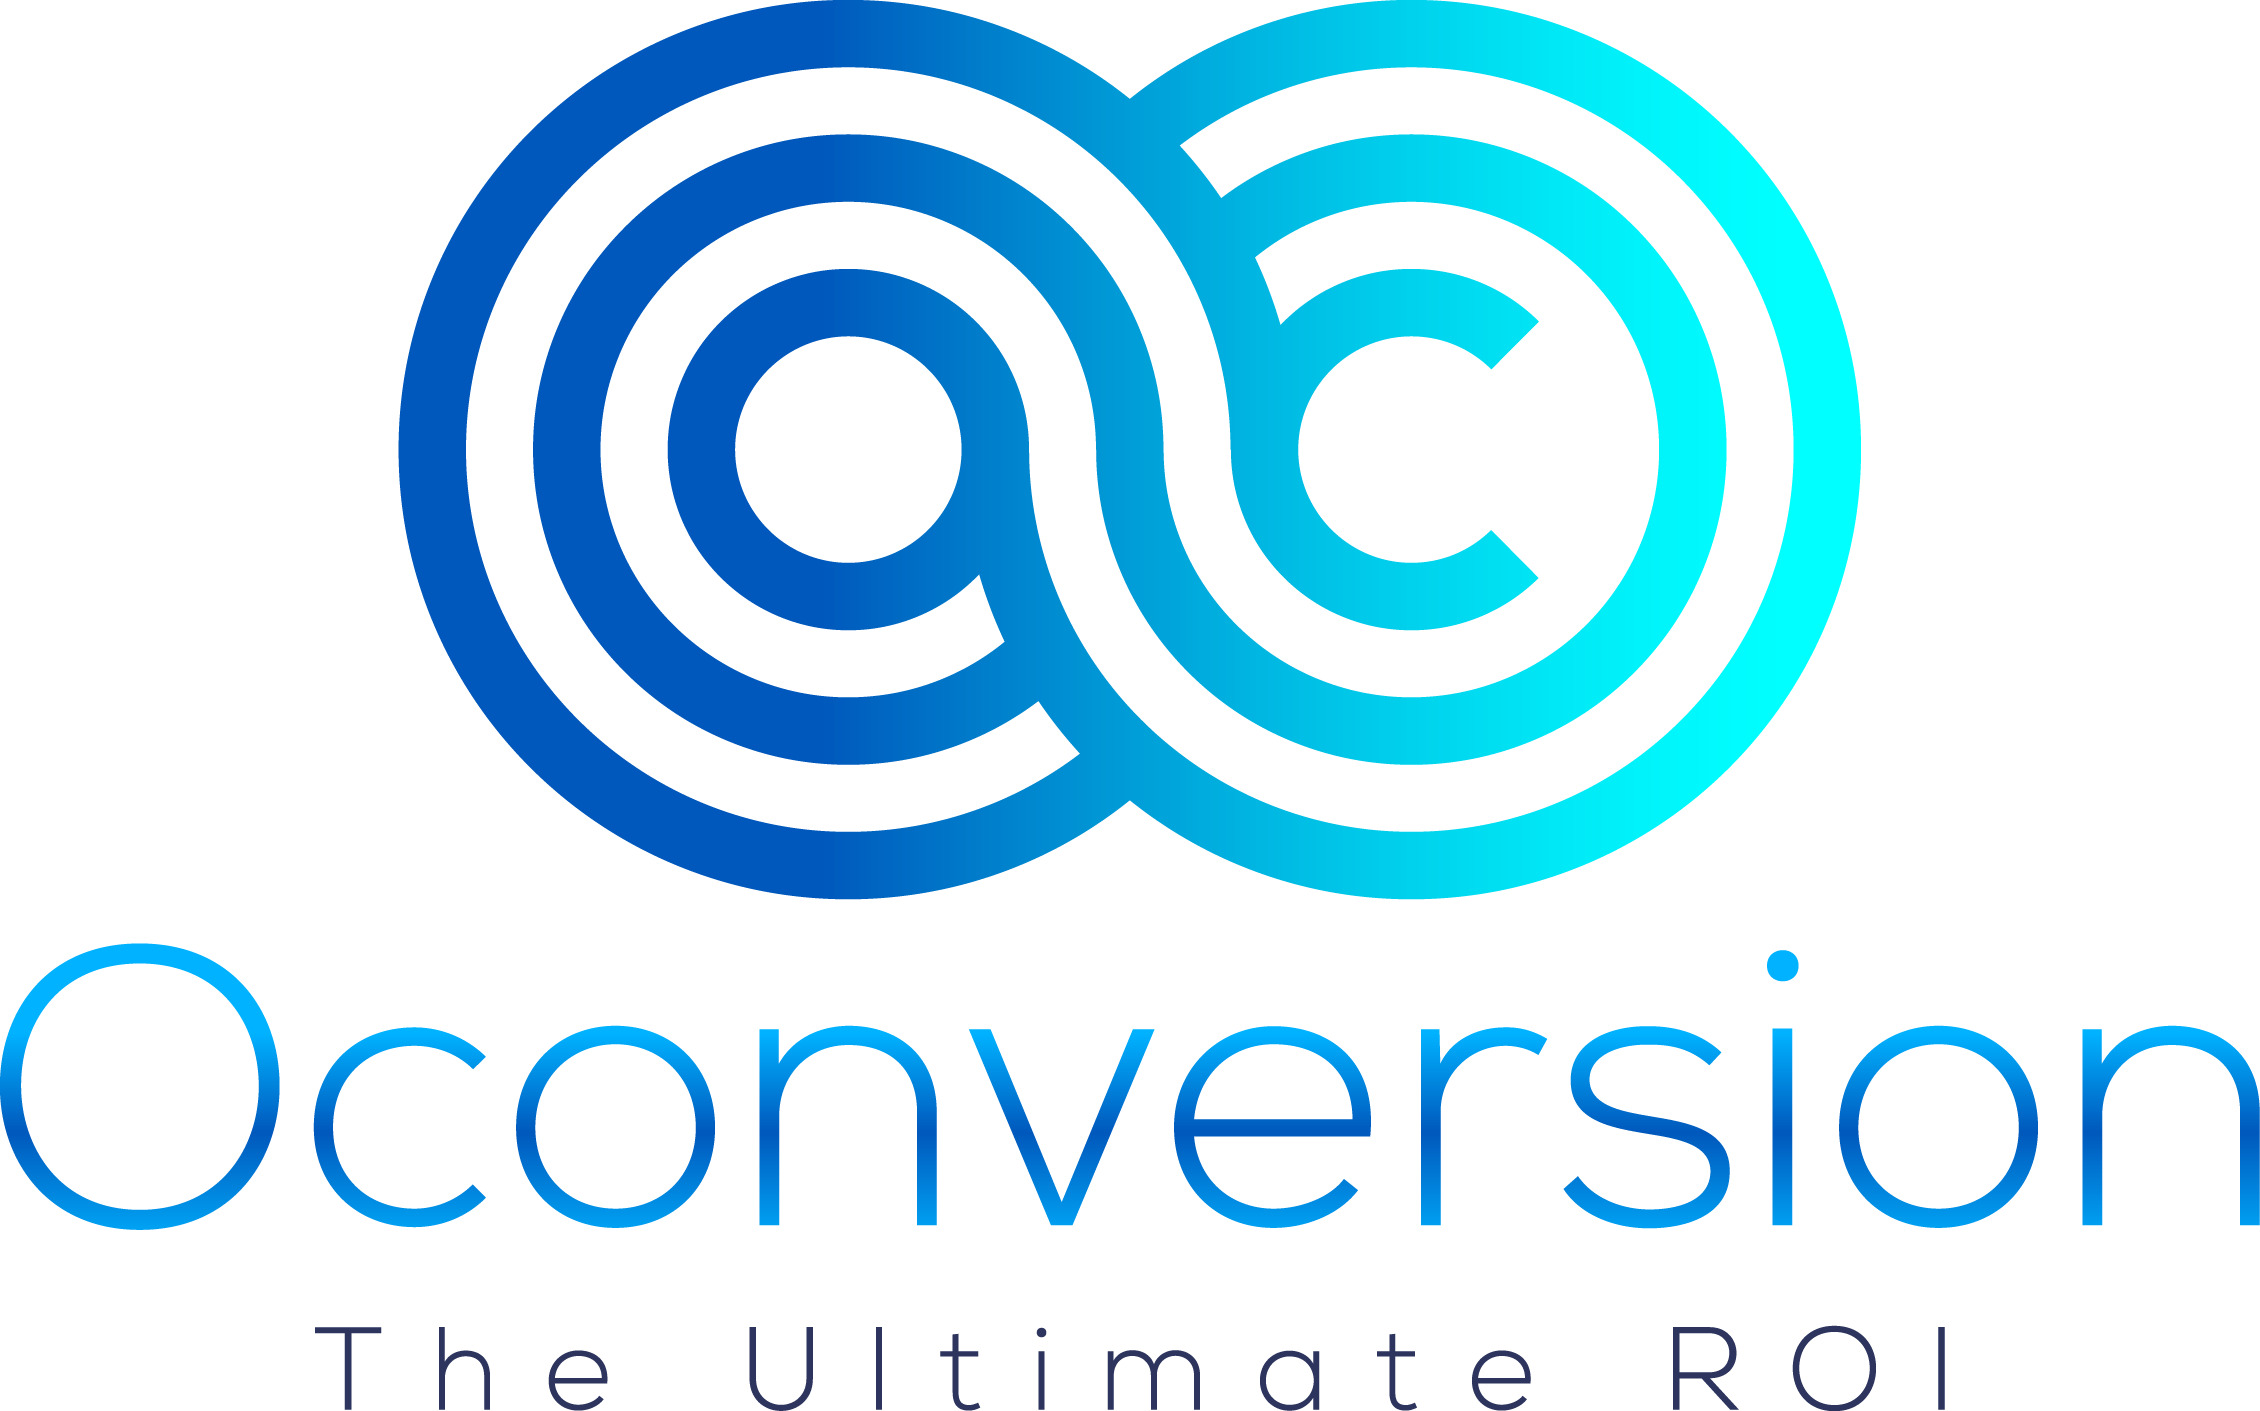 Oconversion, LLC